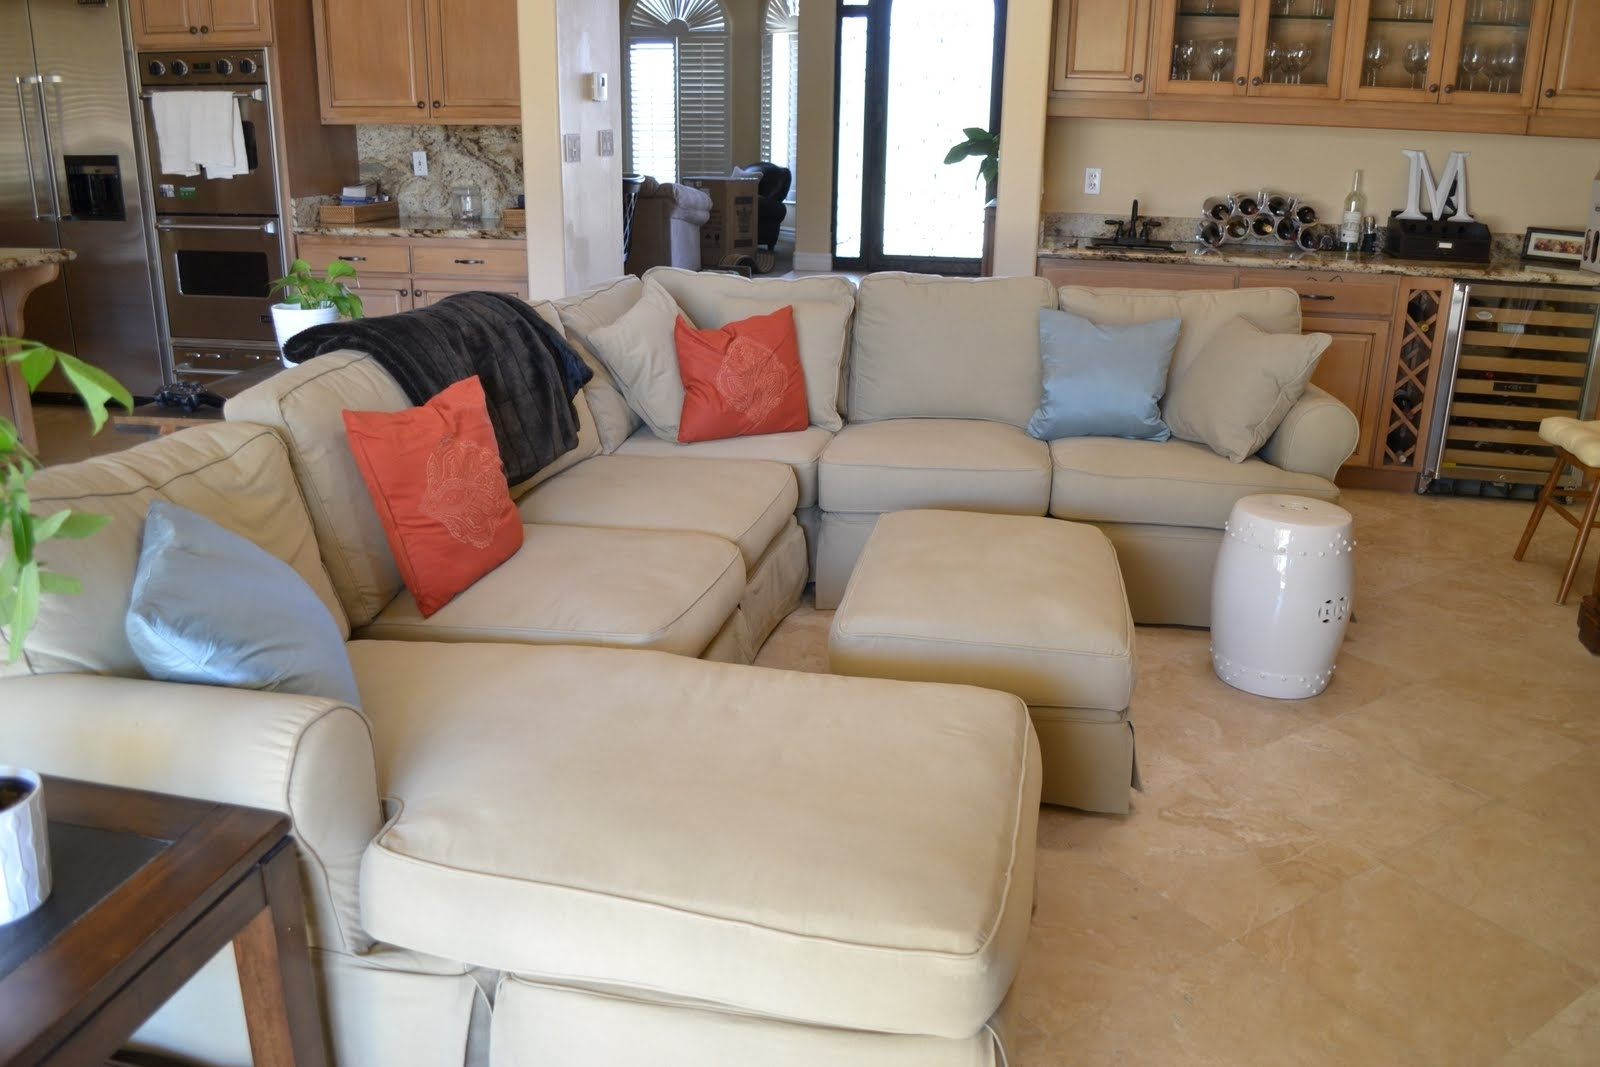 Slipcovers For Sectional Sofas With Chaise Inside Preferred 3 Piece Sectional Slipcovers — Cabinets, Beds, Sofas And (View 9 of 15)